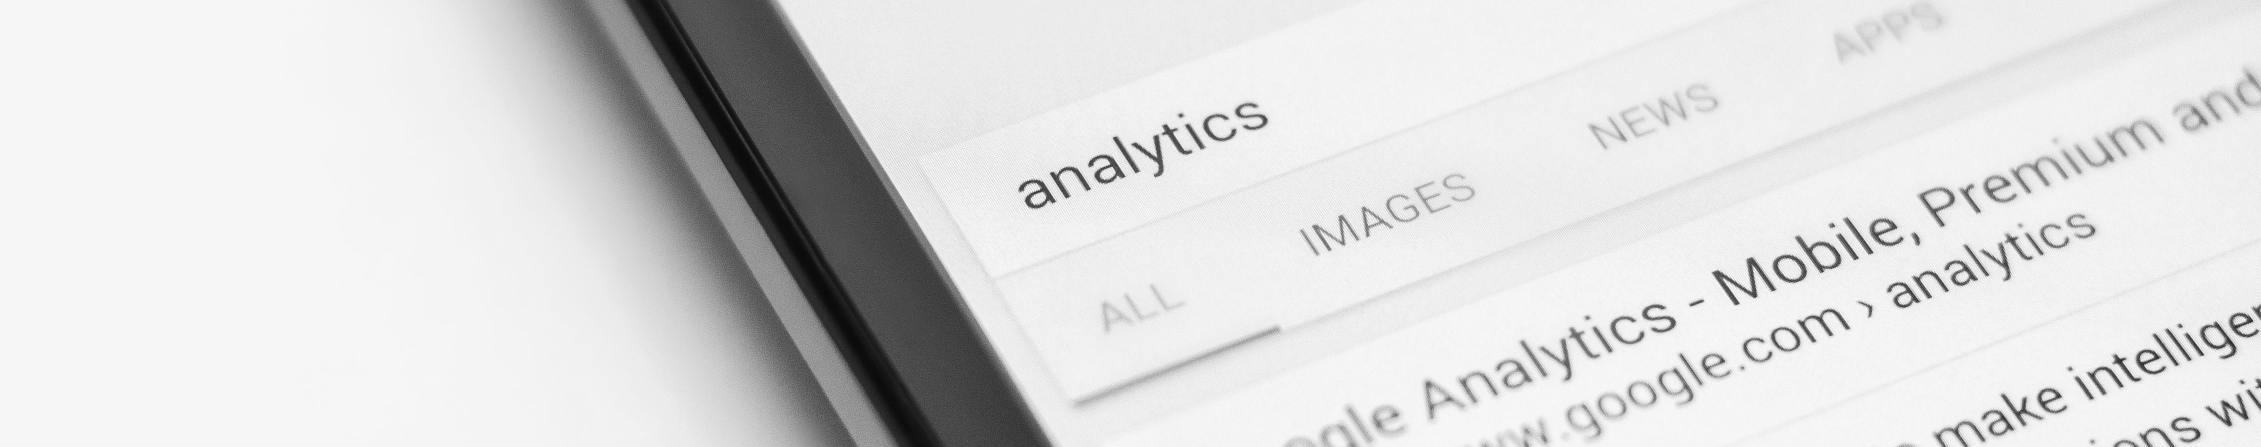 Van Os Marketing - Workshop Google Analytics